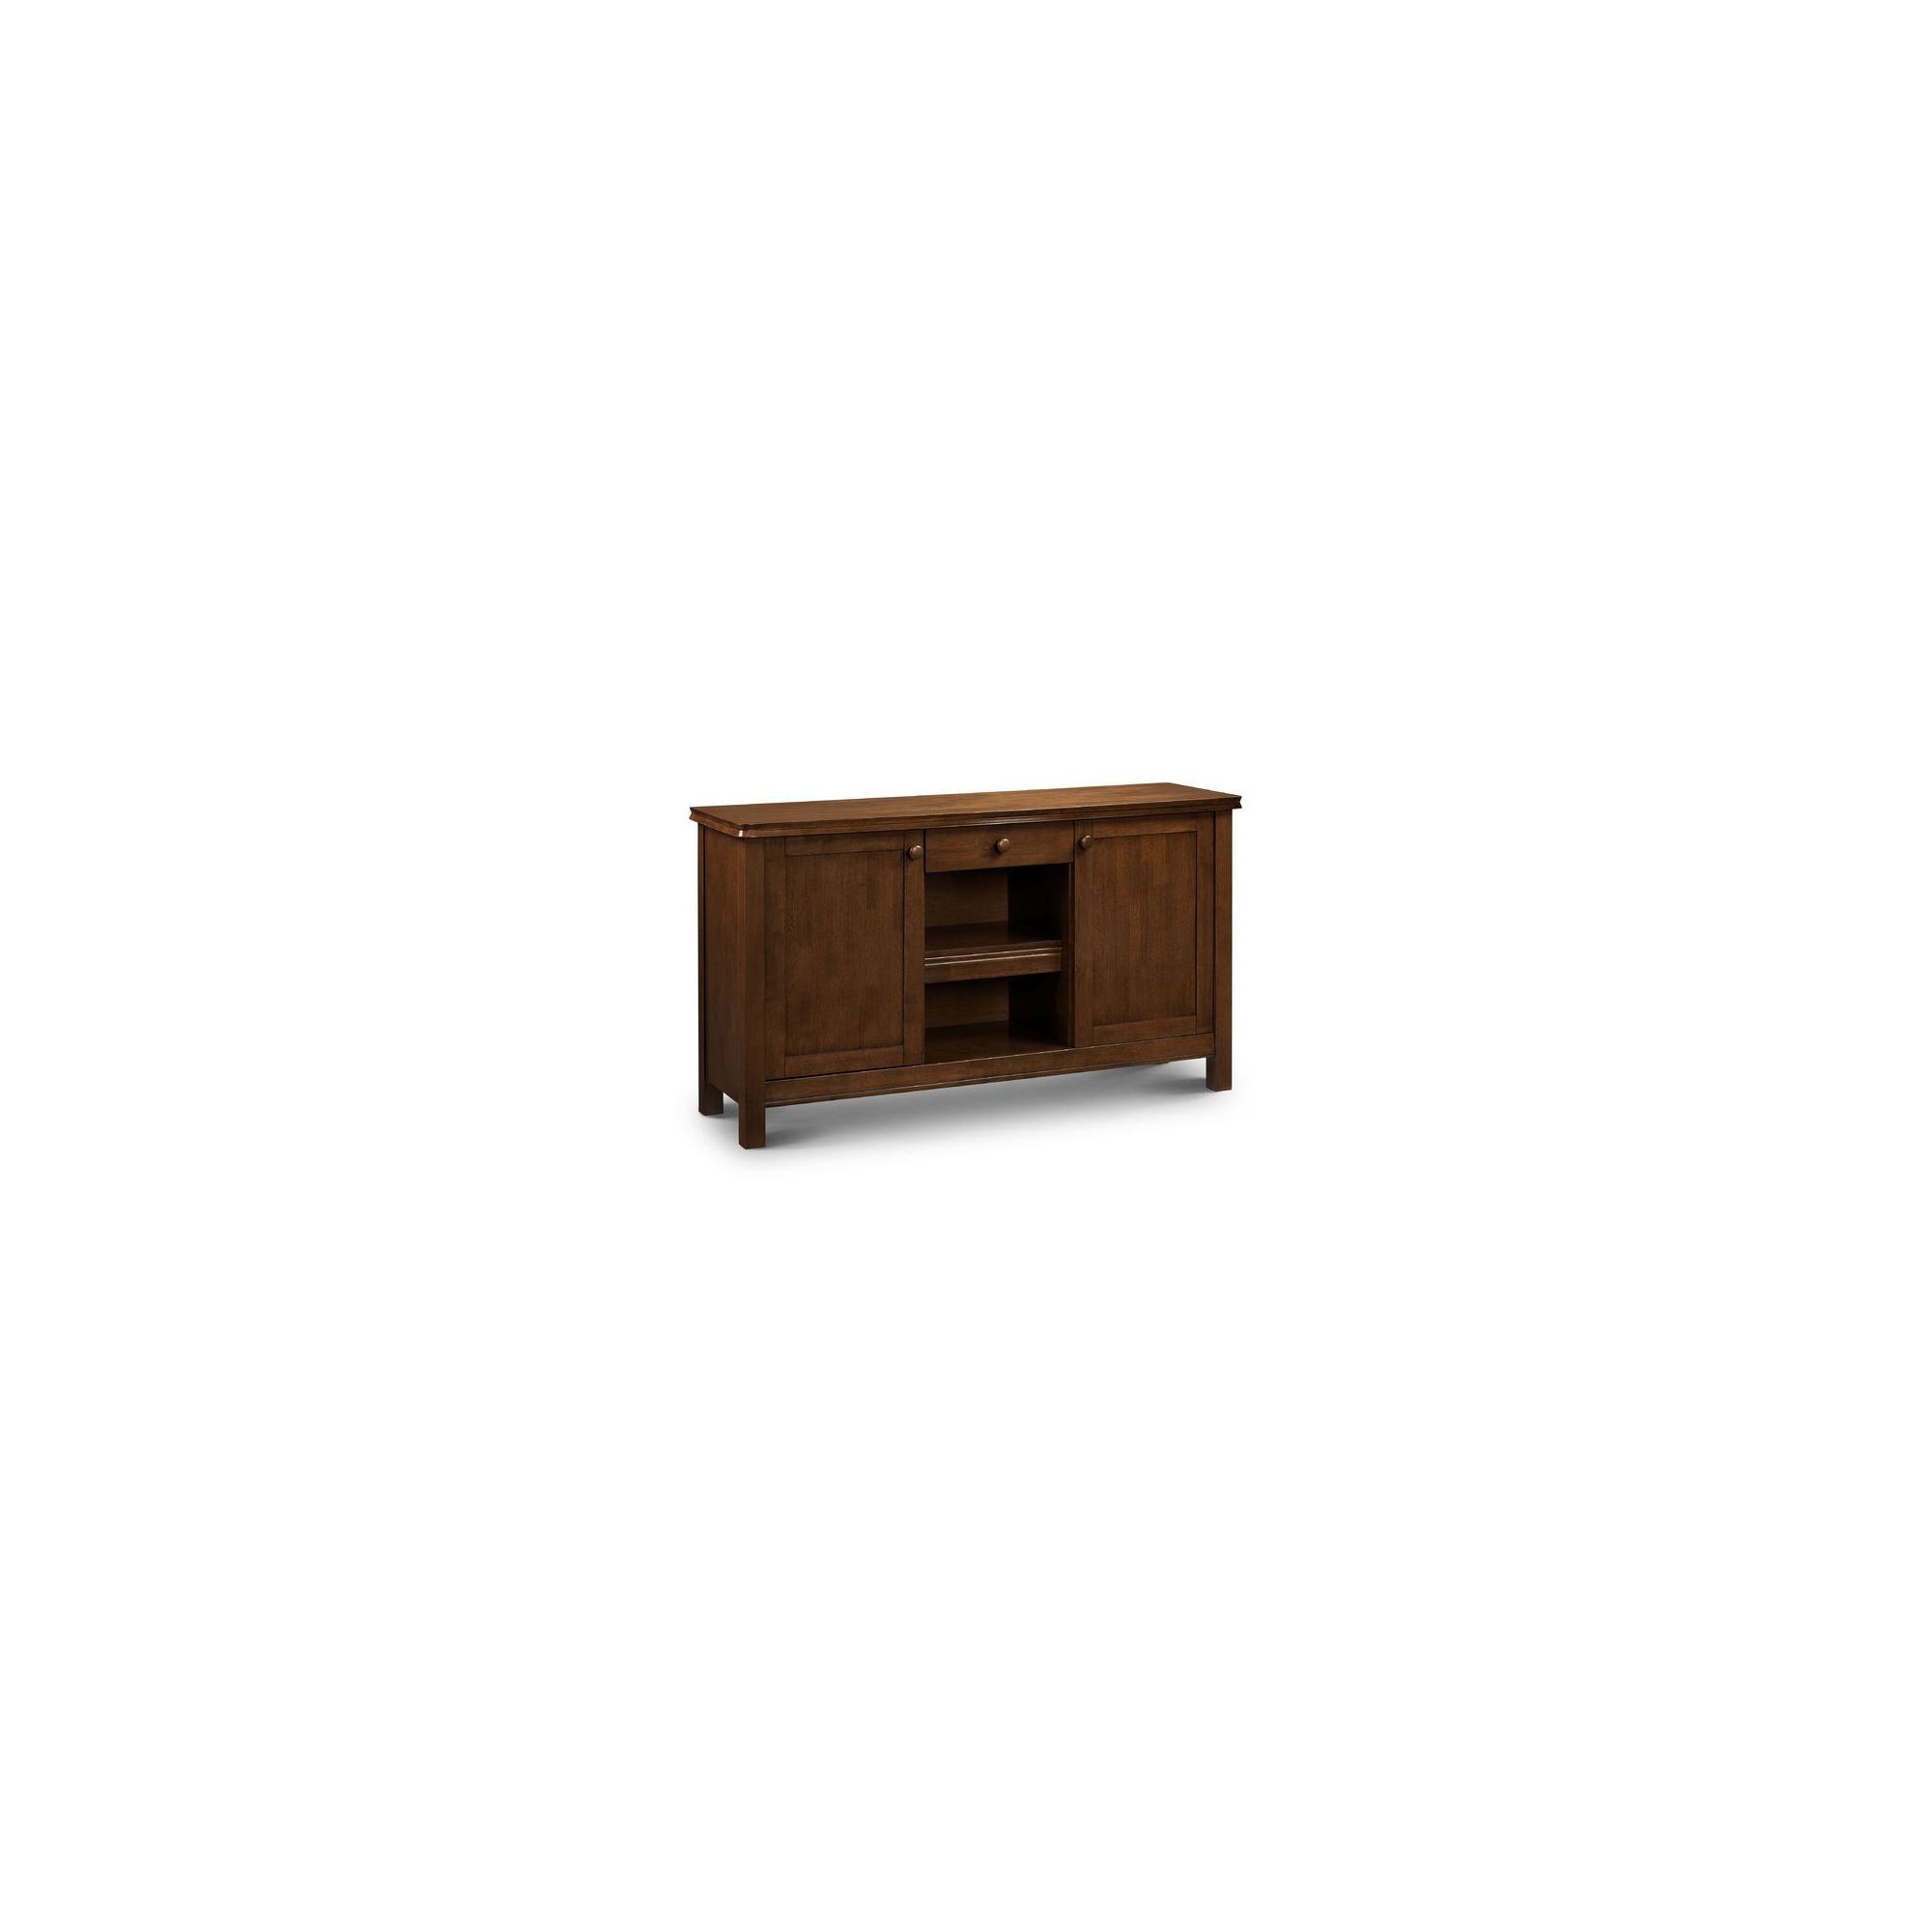 Julian Bowen Canterbury Sideboard at Tesco Direct